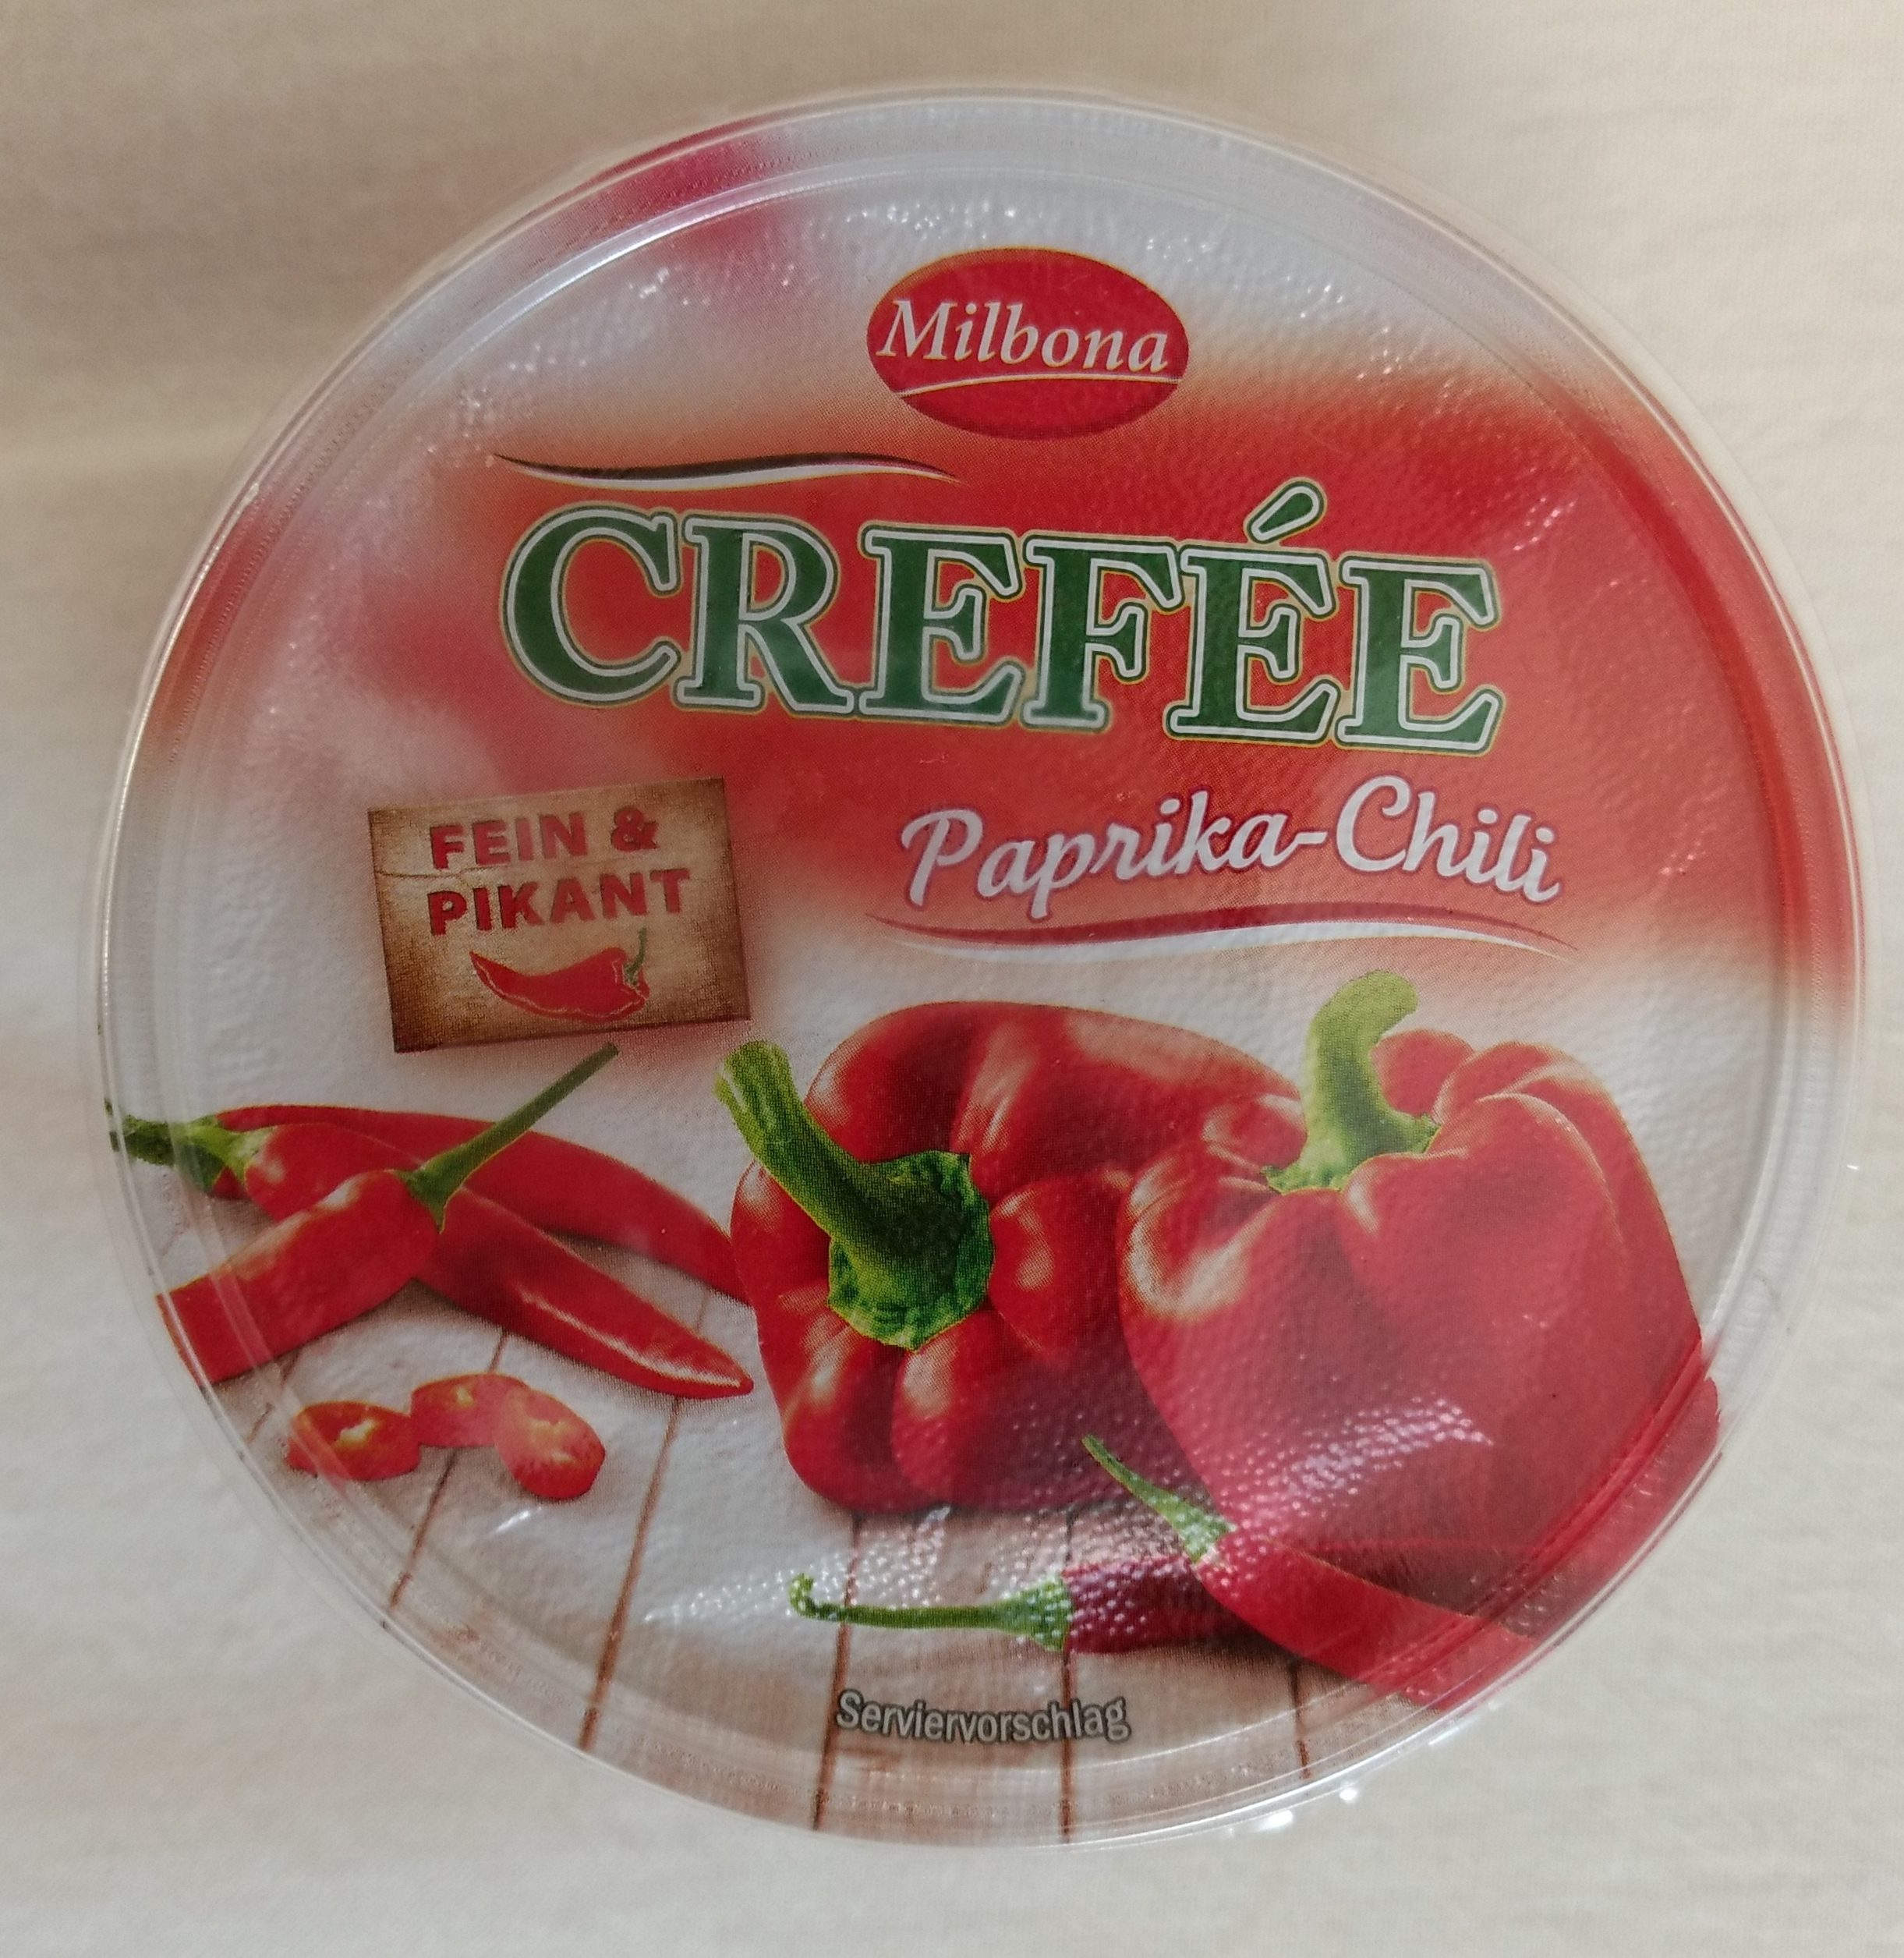 Crefée Paprika-Chili - Product